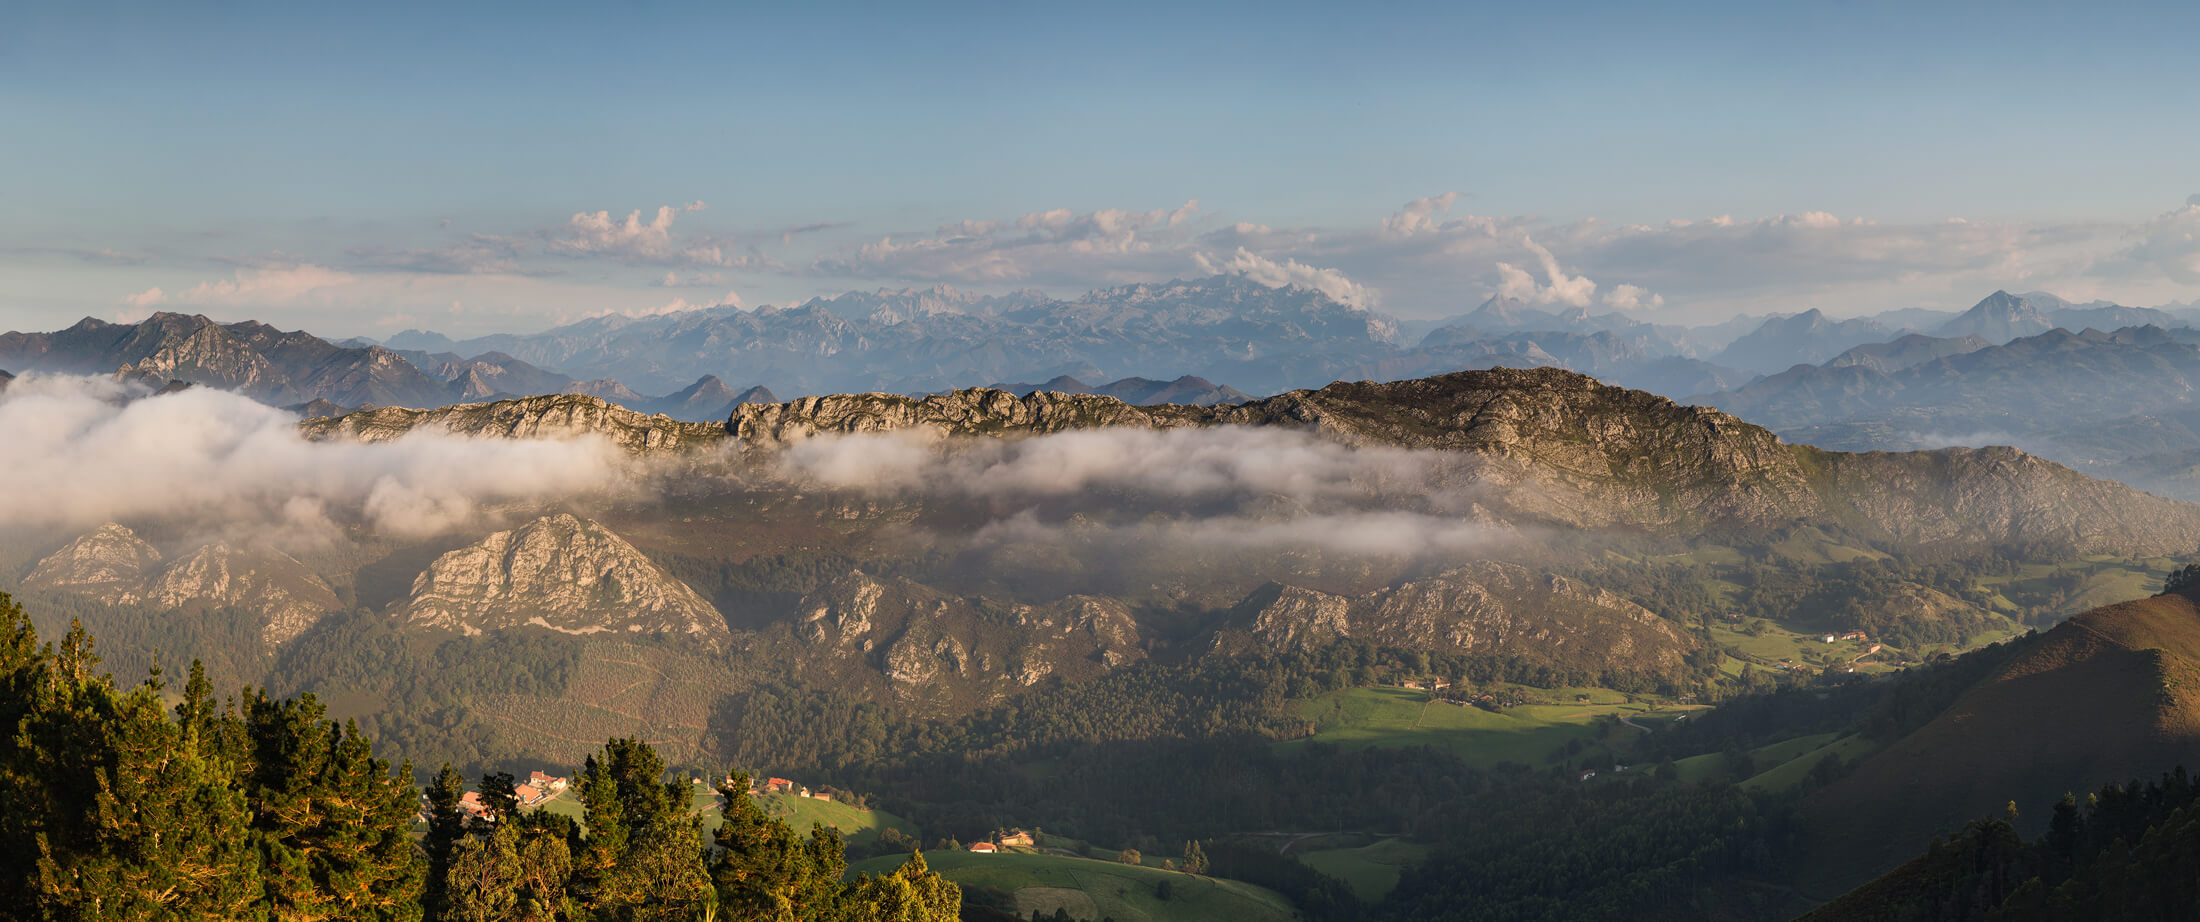 Picos de Europa Sunset with clouds and haze